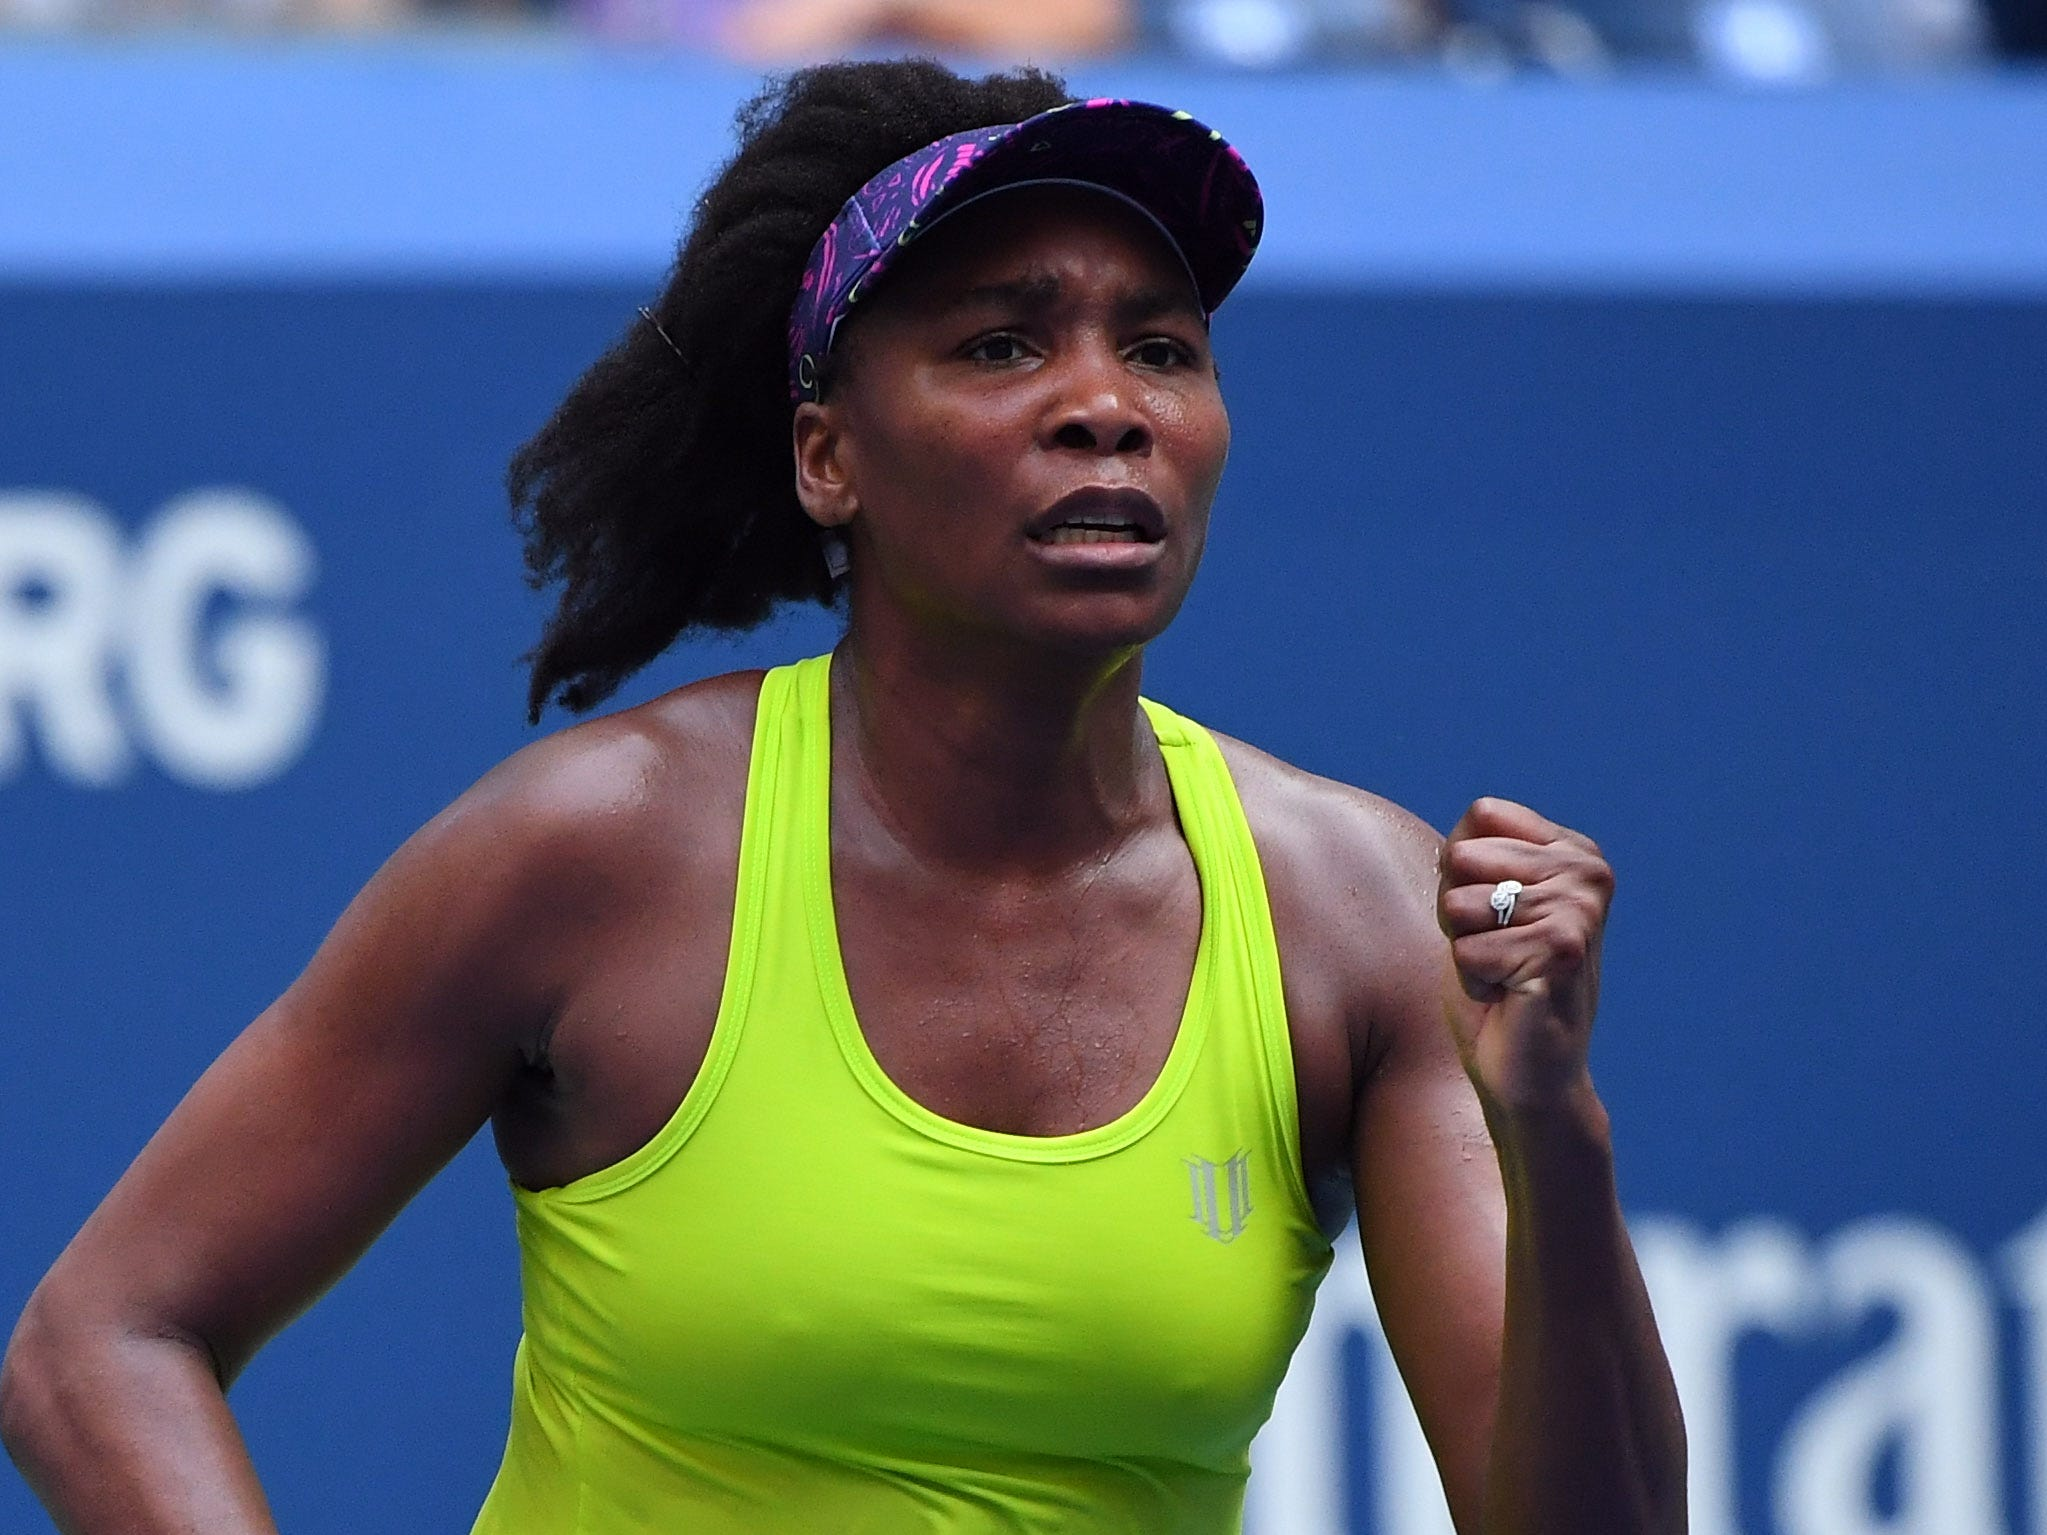 Venus Williams of the USA holds Svetlana Kuznetsova of Russia 6-3, 5-7, 6-3 in a first-round clash of former champions.